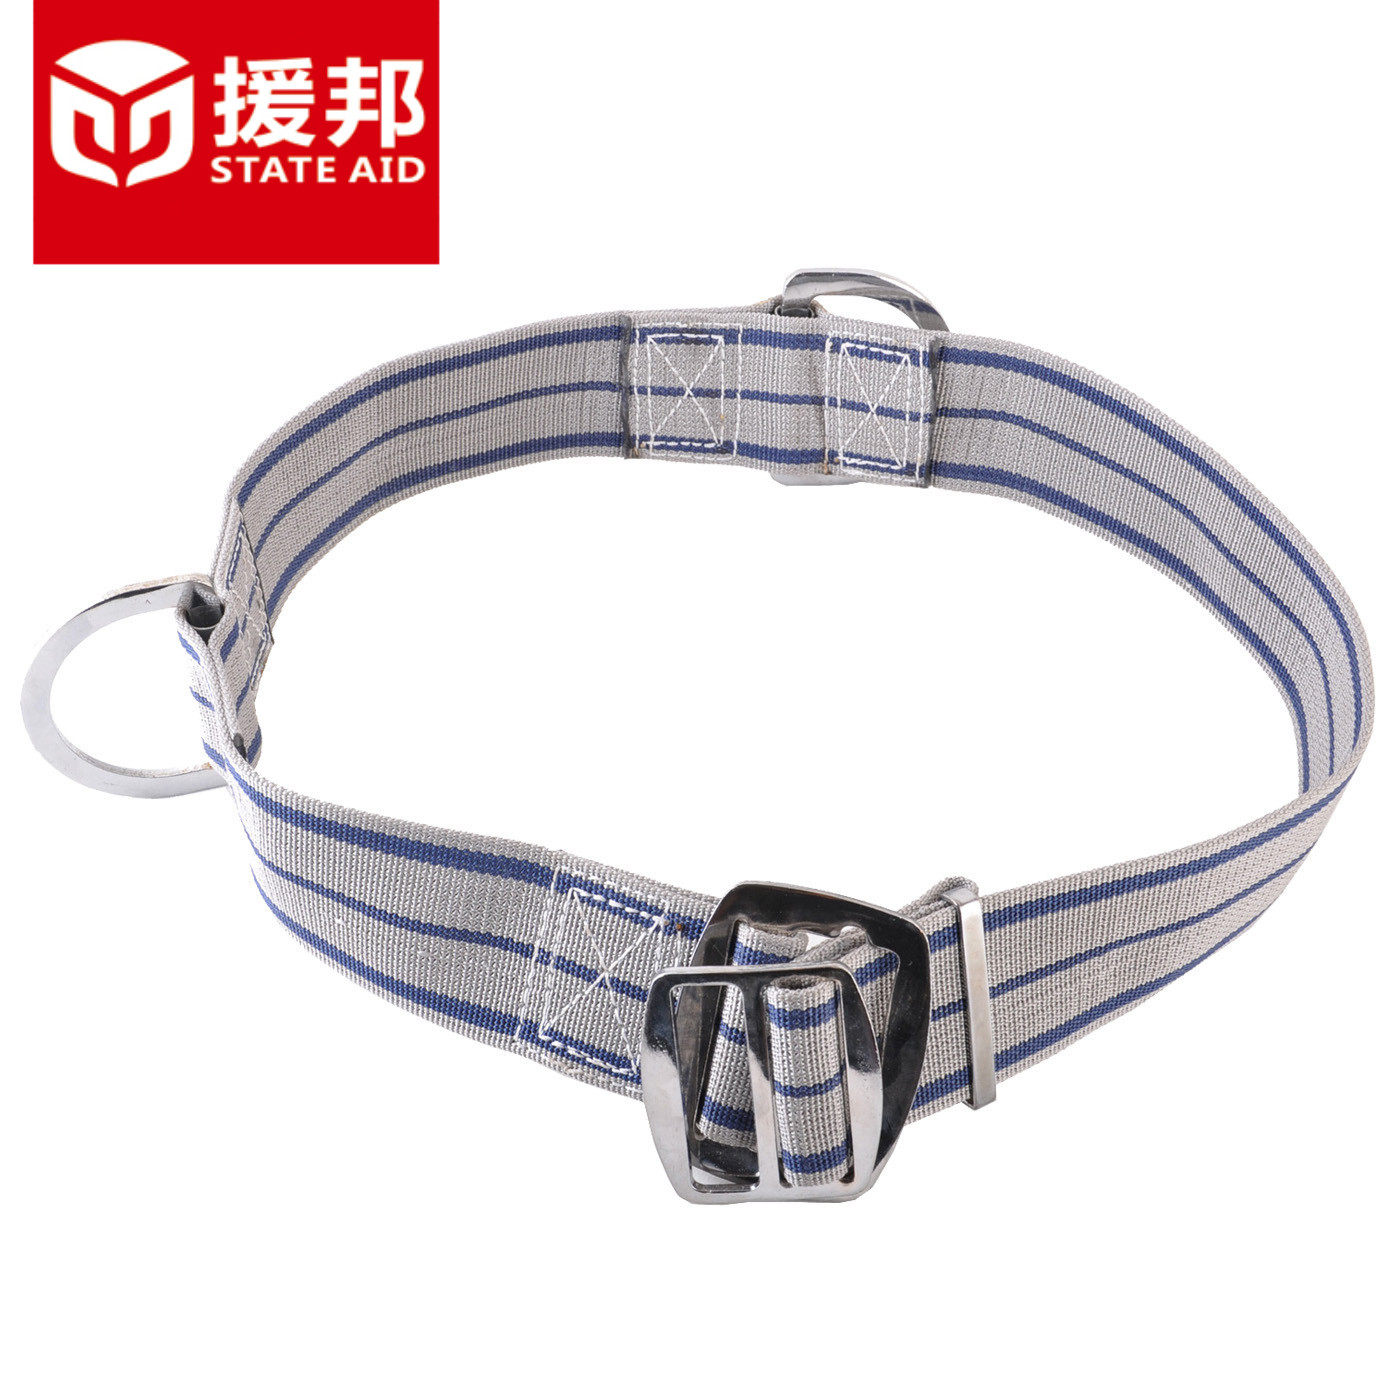 Aidang outdoor safety belt escape belt safety belt electrical belt construction belt